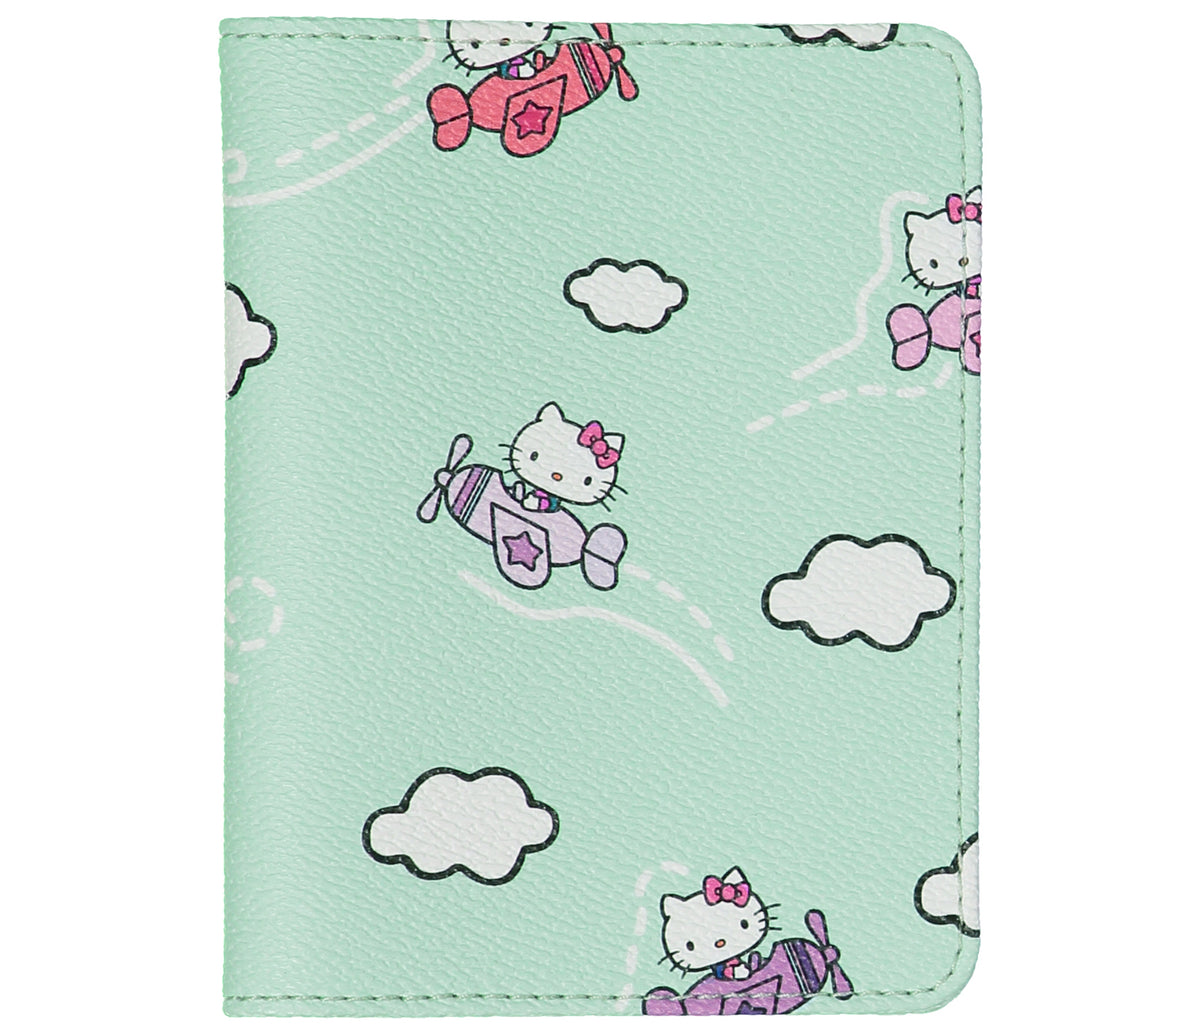 Stoney Clover Lane x Hello Kitty Airplanes Passport Holder